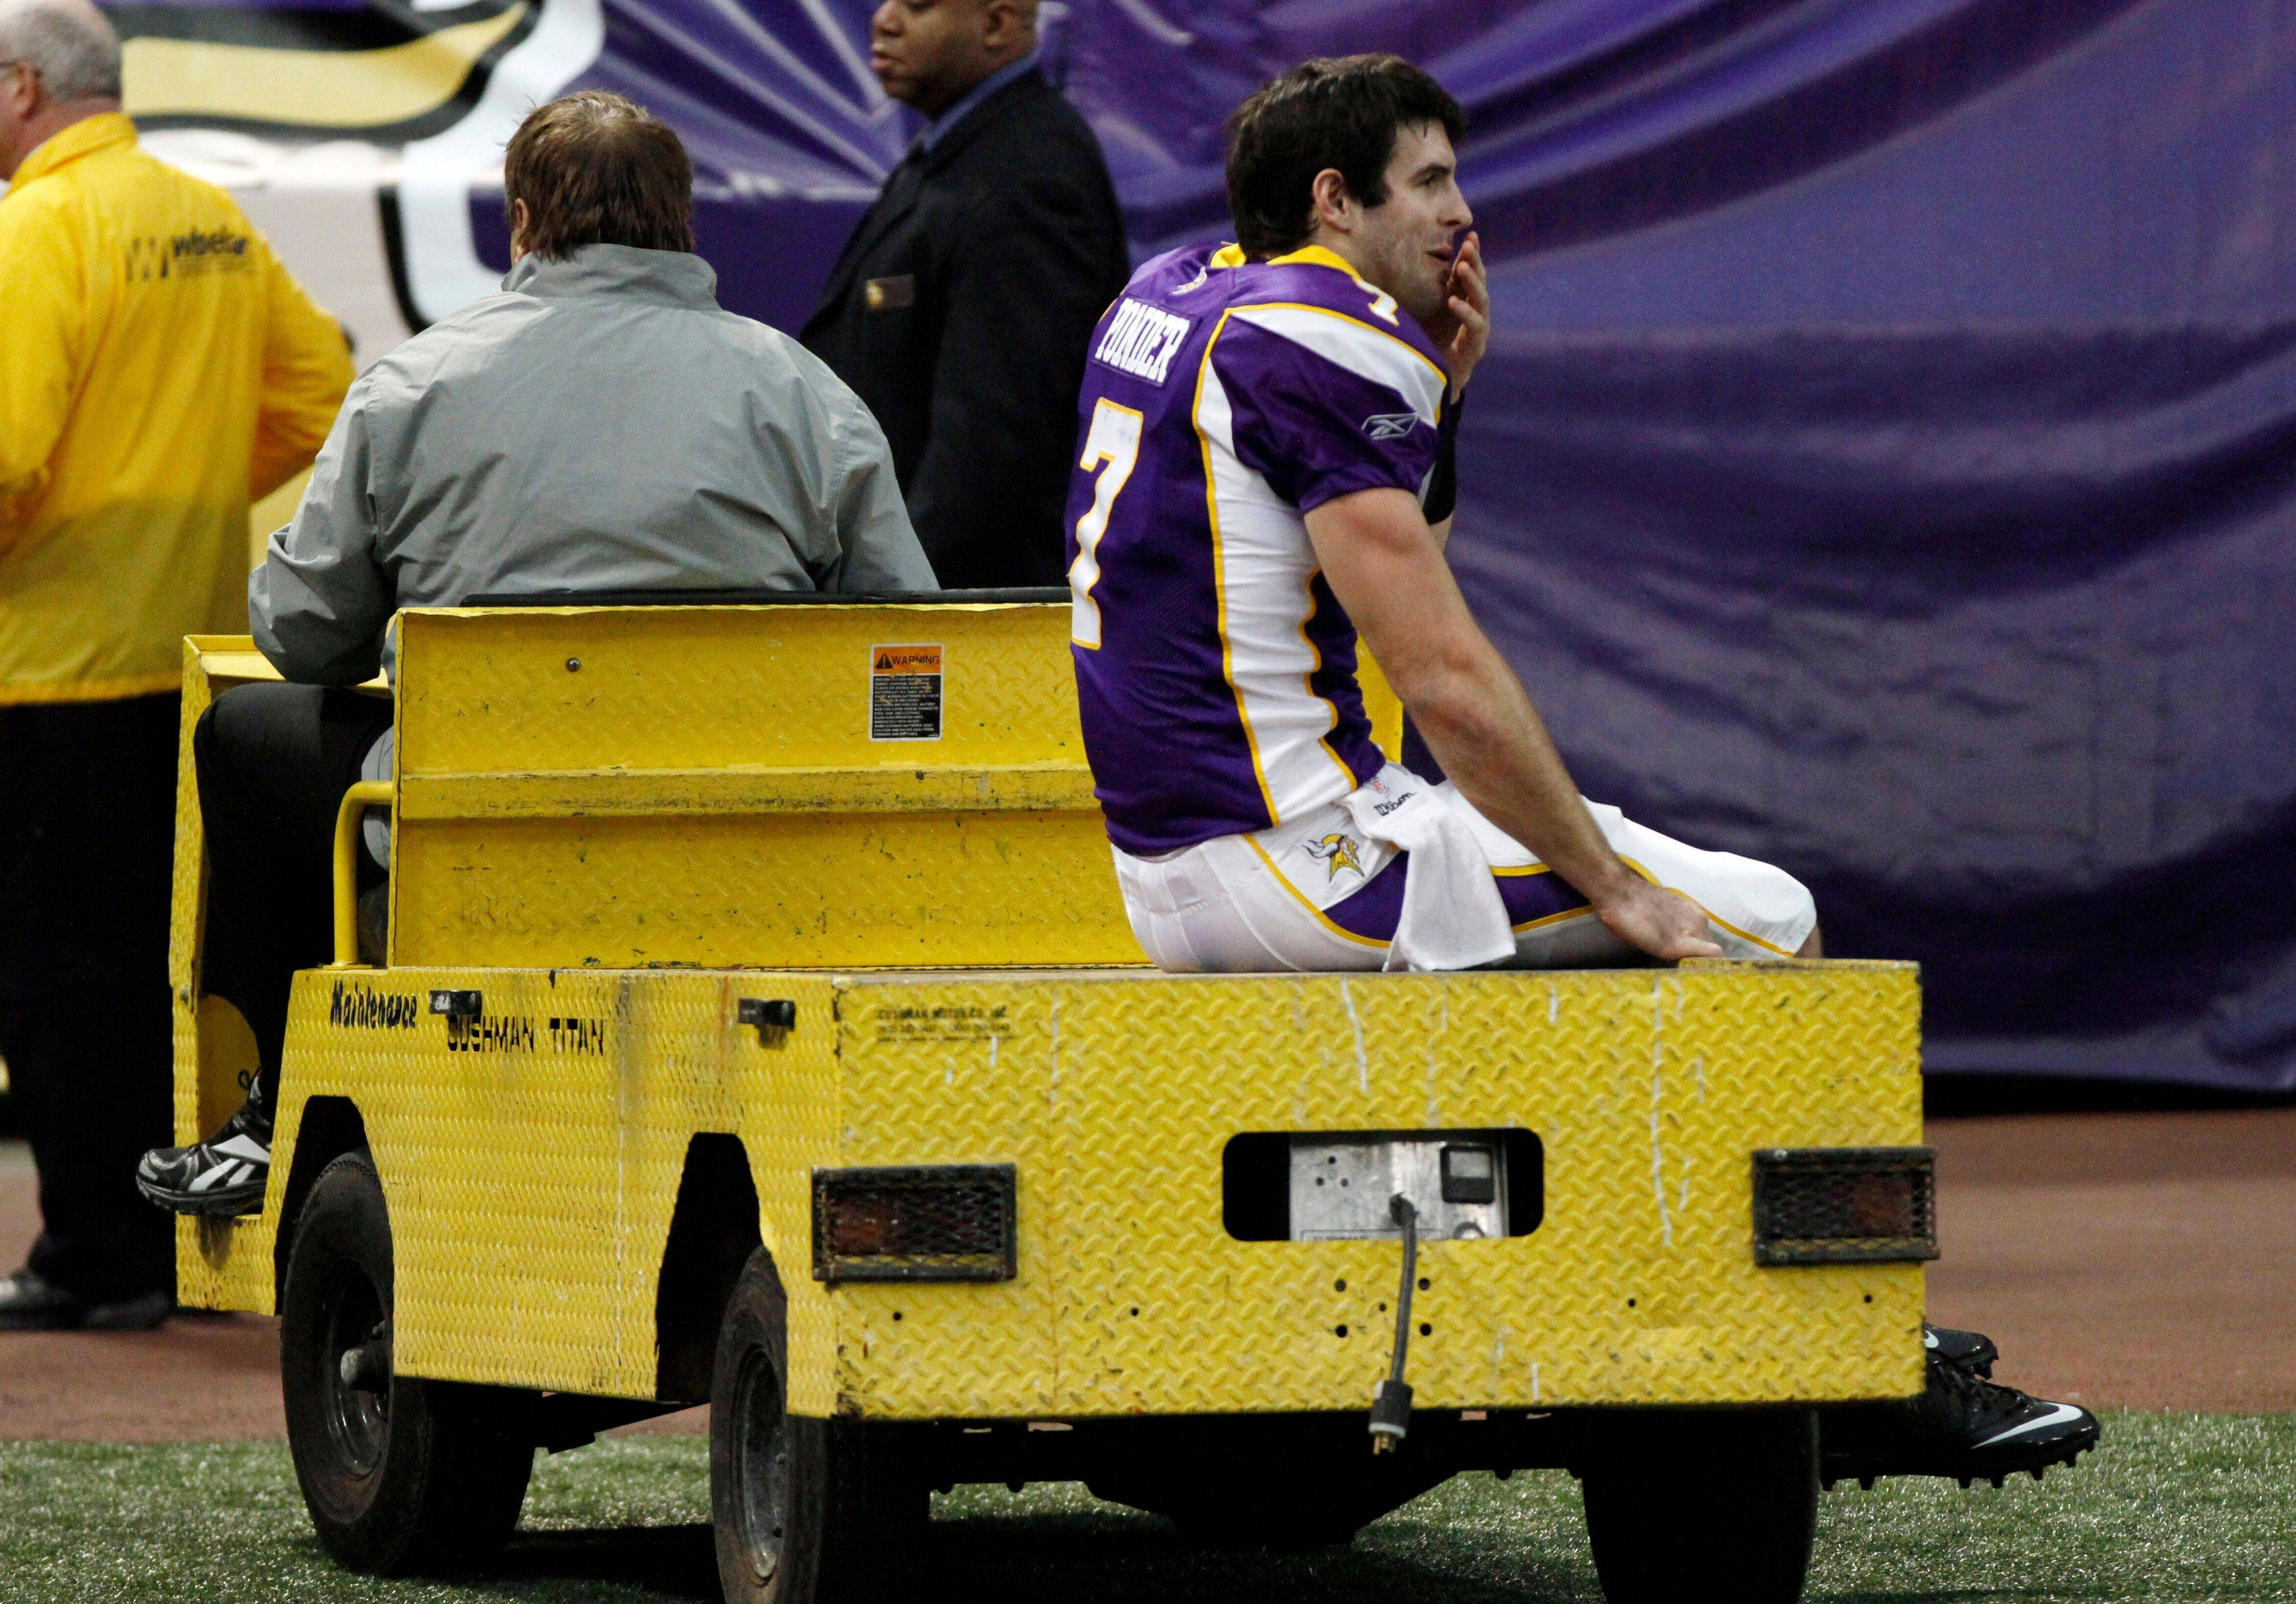 Minnesota Vikings quarterback Christian Ponder is carted off the field after getting injured during the first half. The rookie was crunched by Bears defensive lineman Israel Idonije just after throwing an incomplete pass.